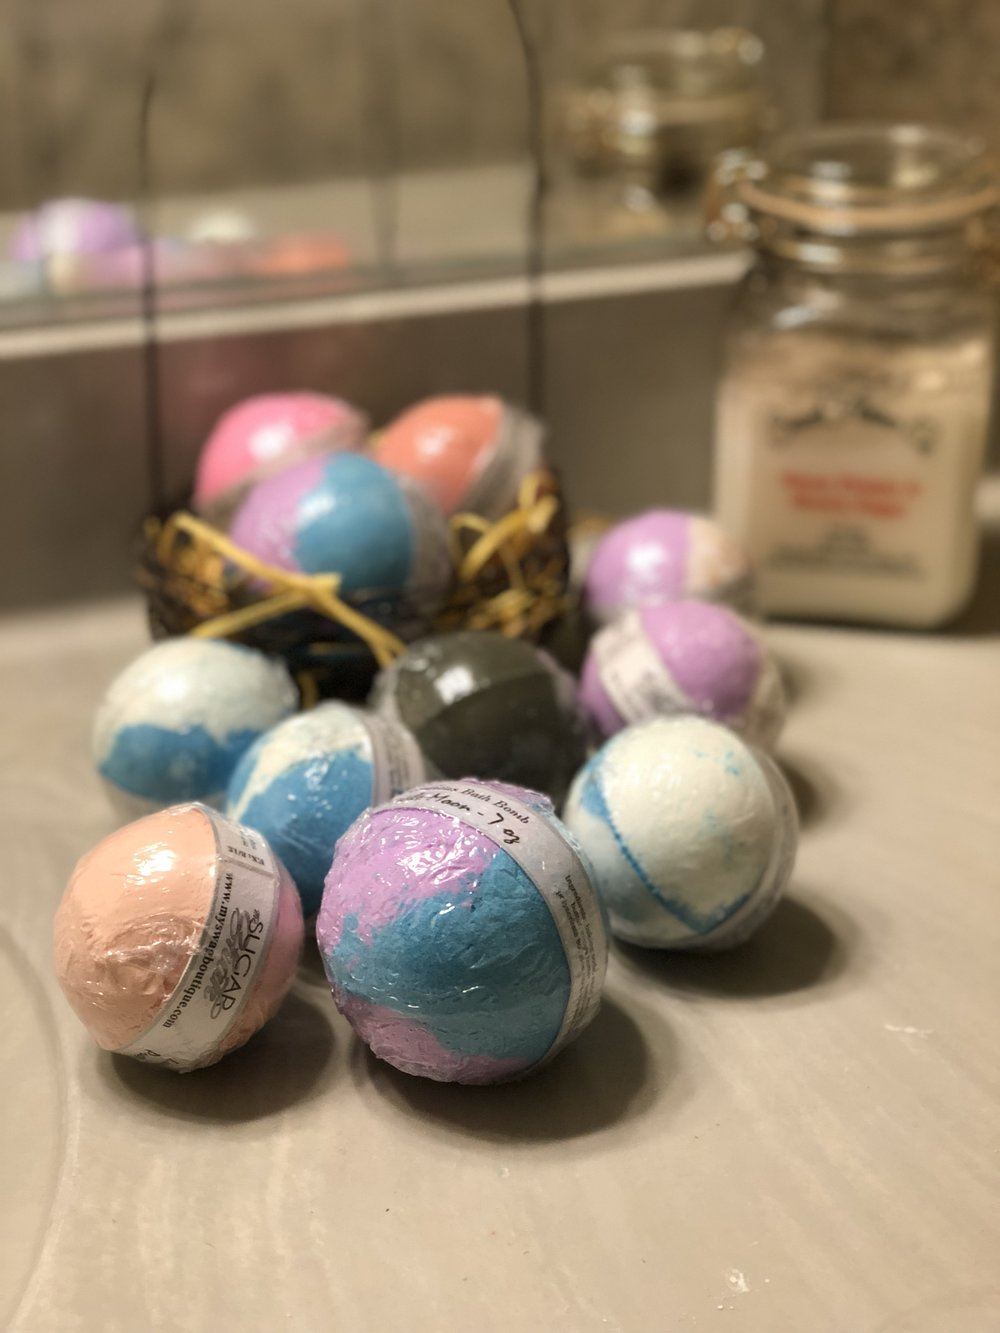 My personal collection of bath bombs! As you can see, I'm addicted.